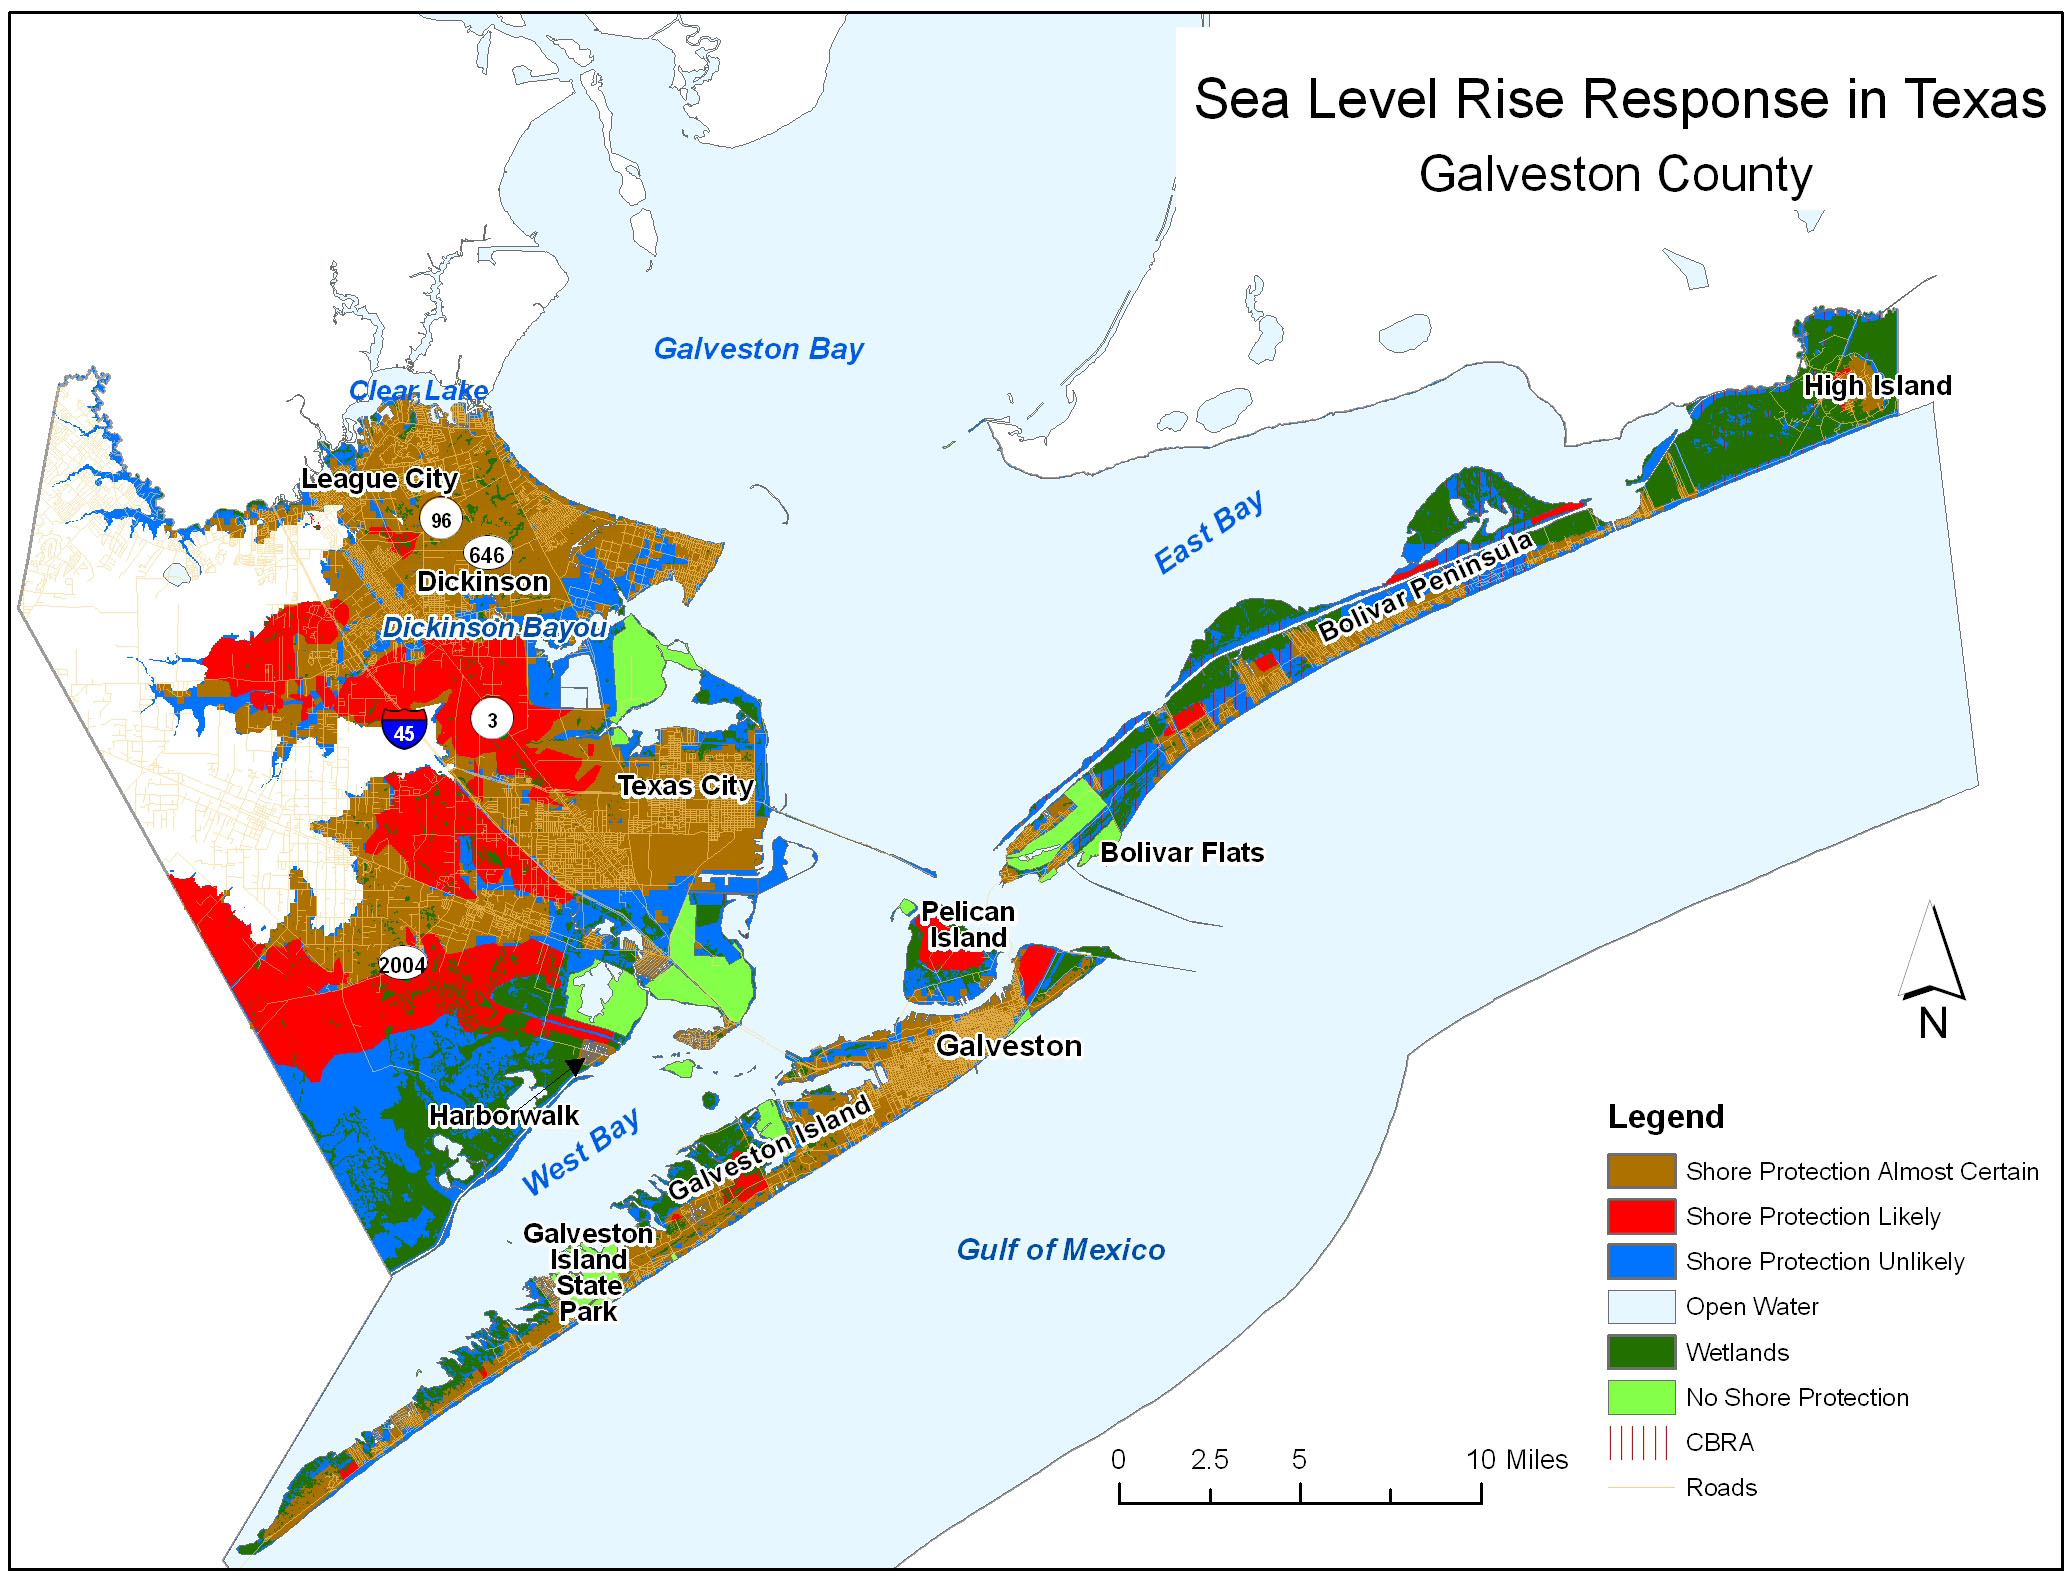 Sea Level Rise Planning Maps Likelihood Of Shore Protection In - Texas elevation map